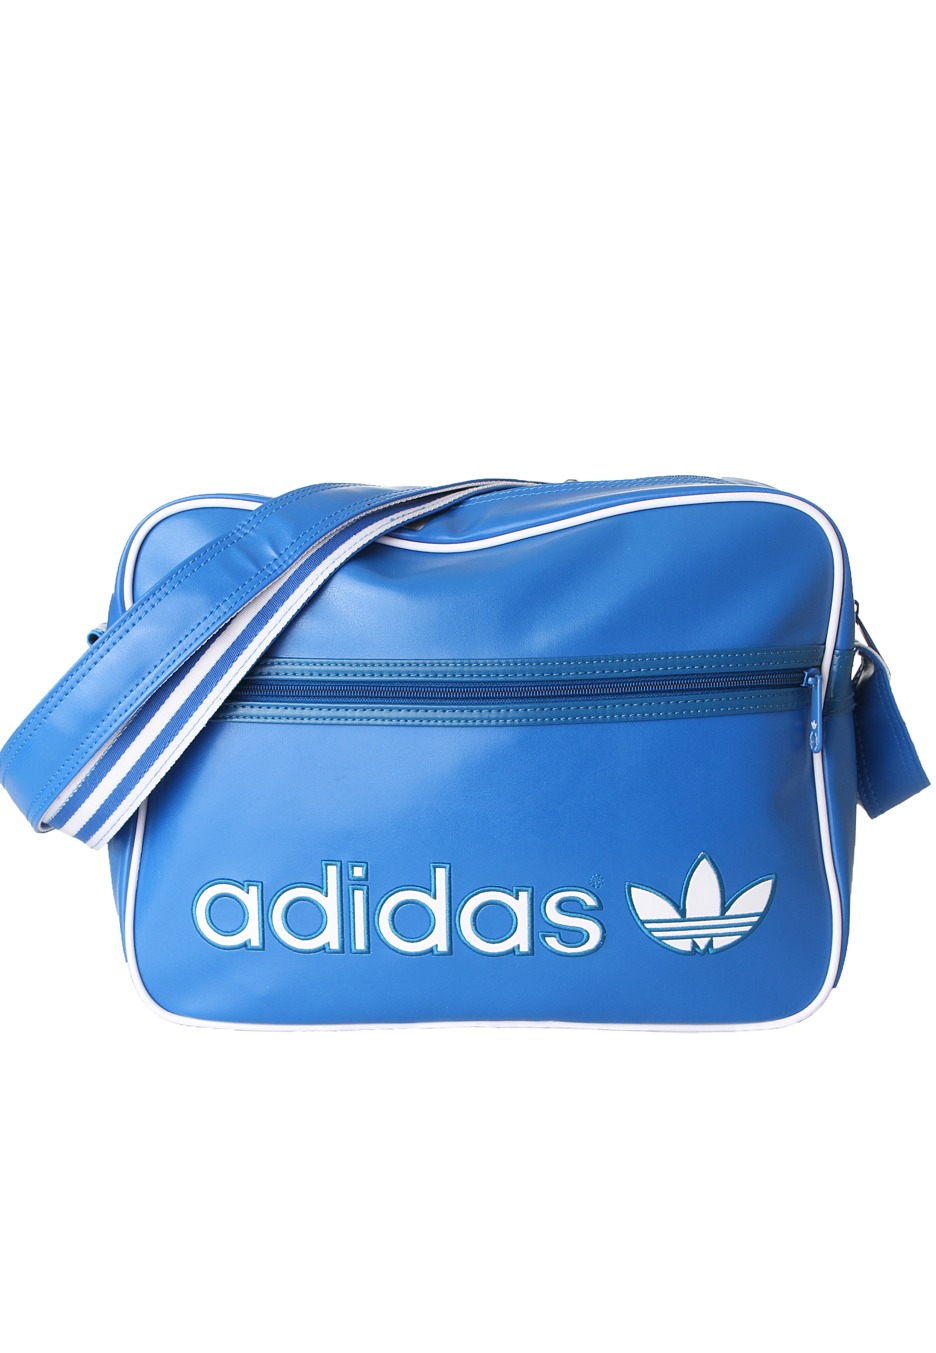 adidas airliner bag sale